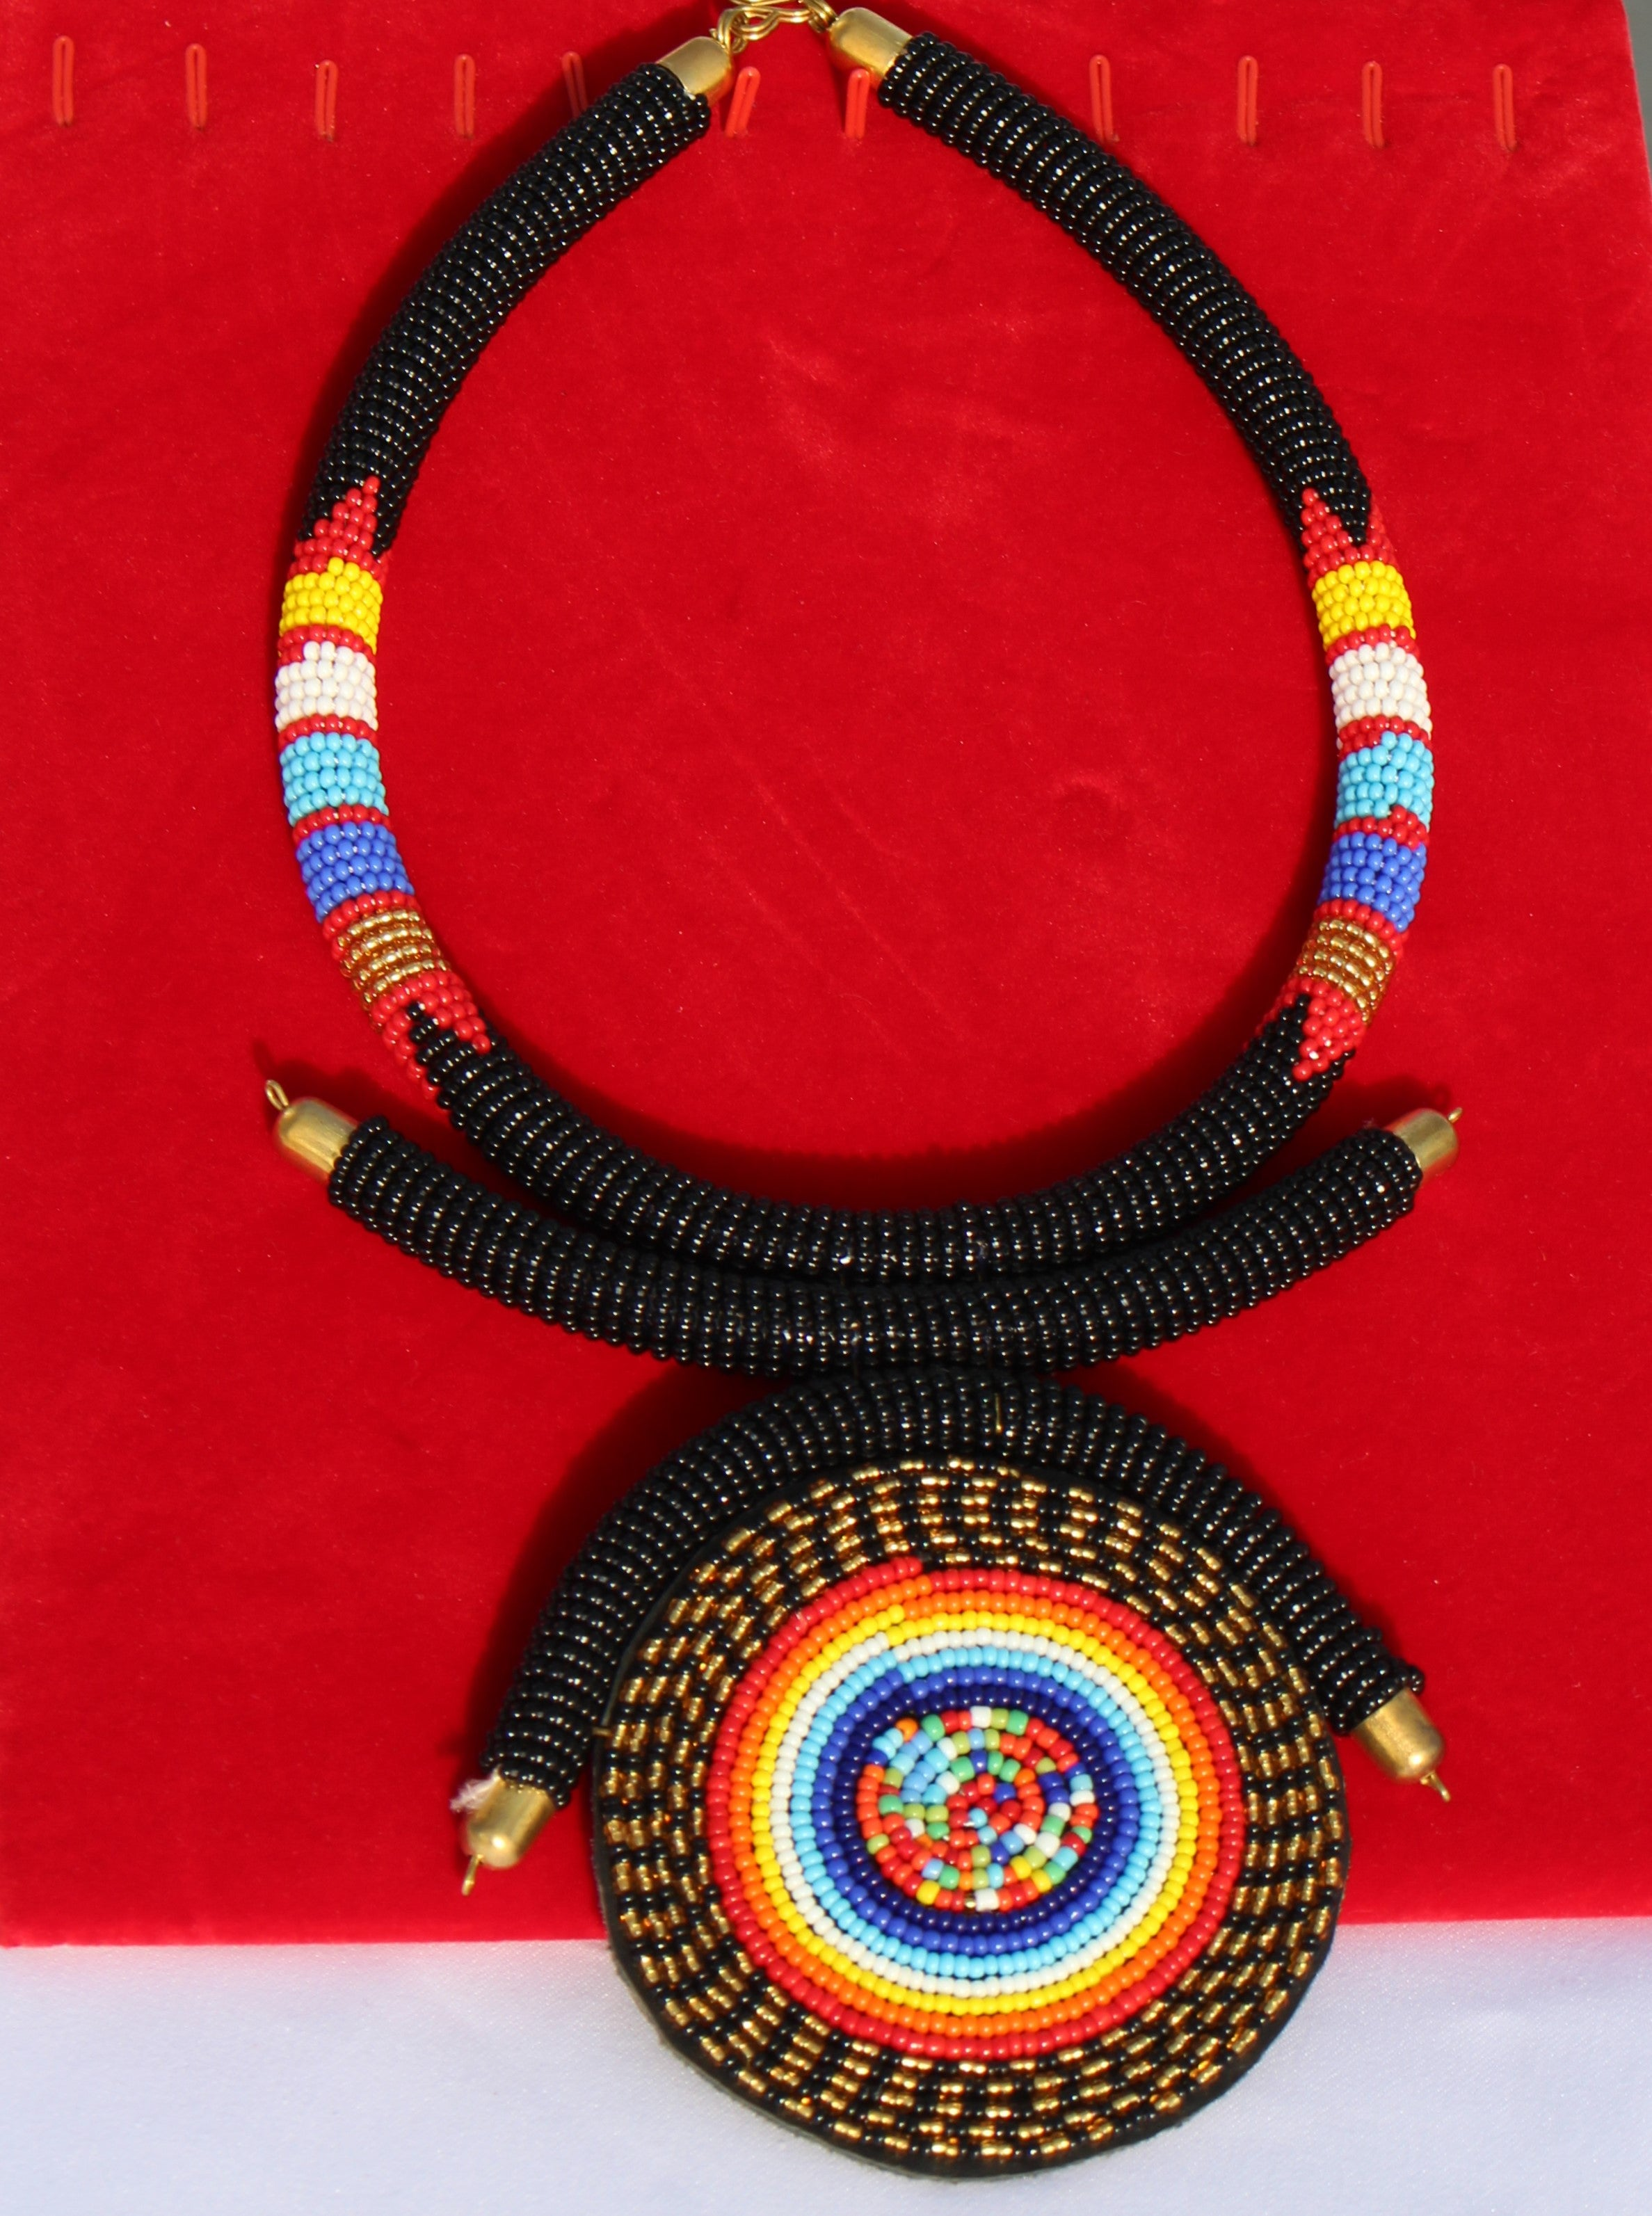 Tribal Multicolored Beaded Necklace - Bridges to Borders